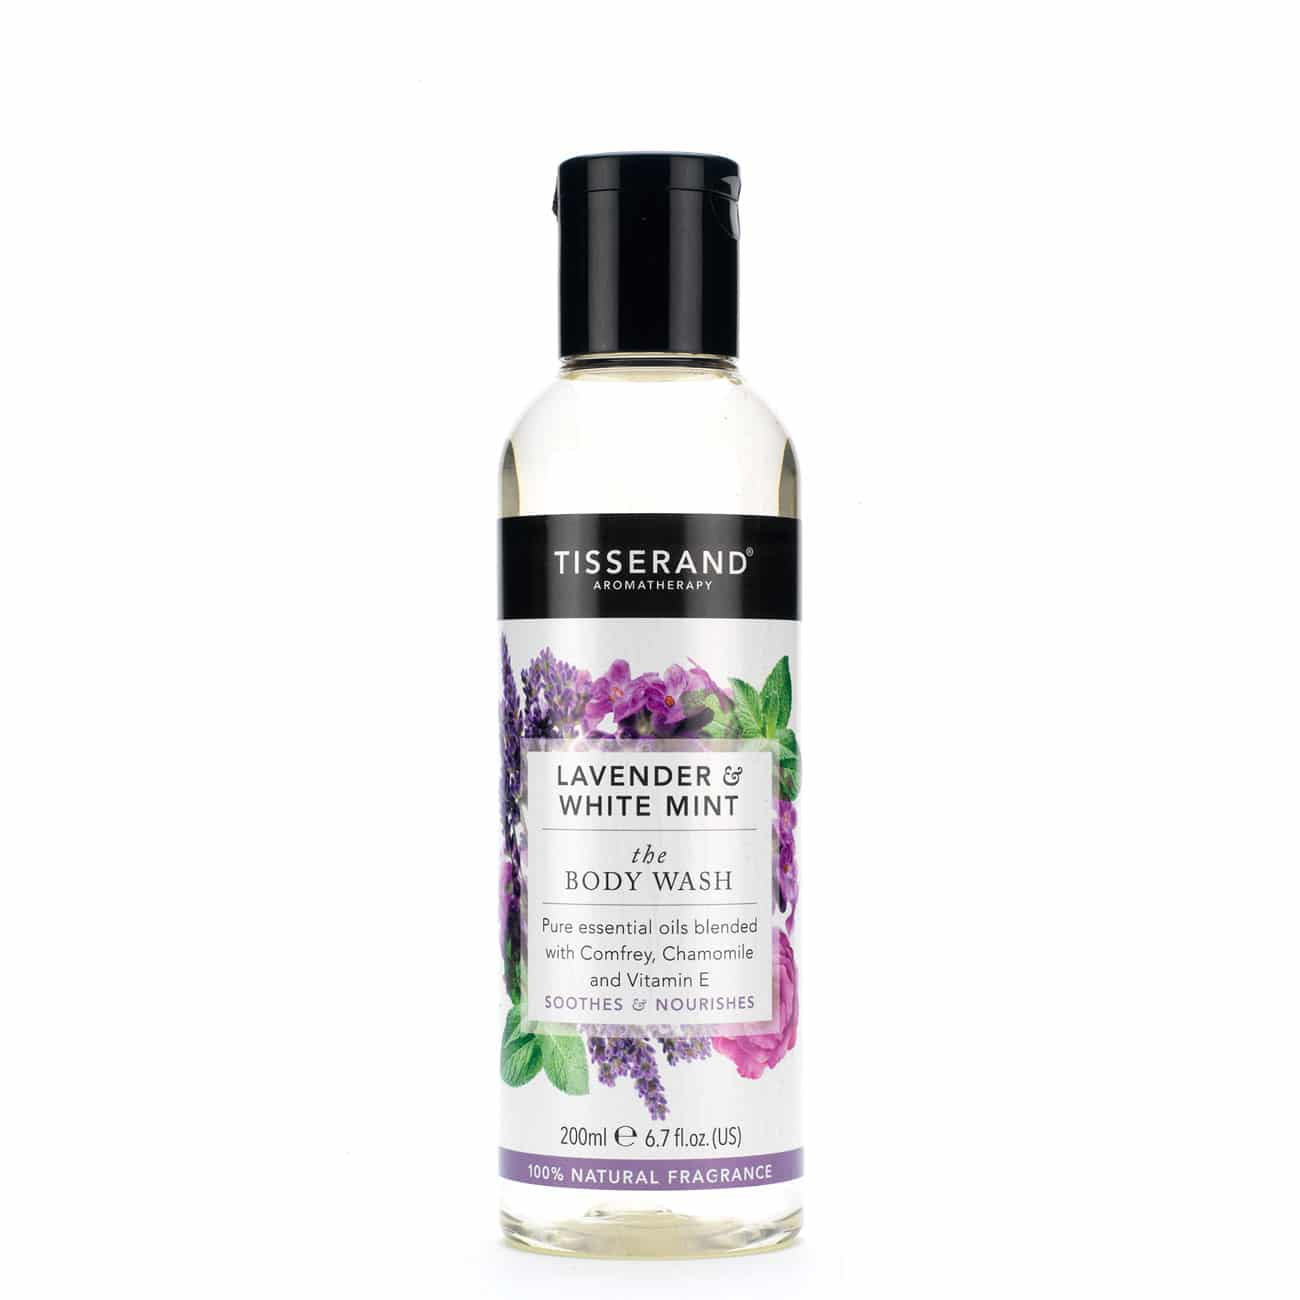 Tisserand-Aromatherapy-Lavender-and-White-Mint-Body-Wash_1300x1300_web